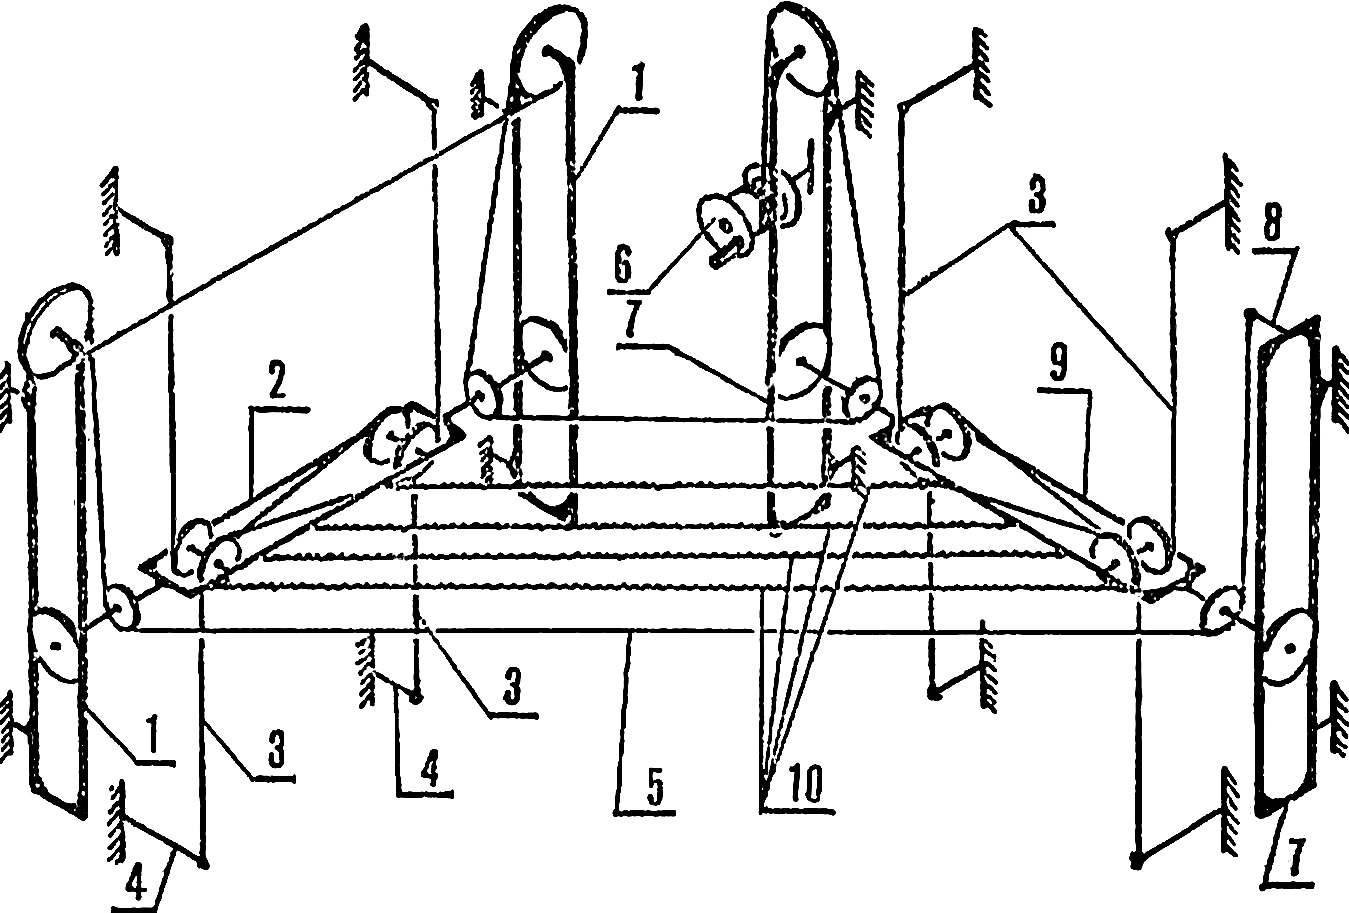 Fig. 1. Schematic diagram wiring cords lifting and protivoprotosanoe system.